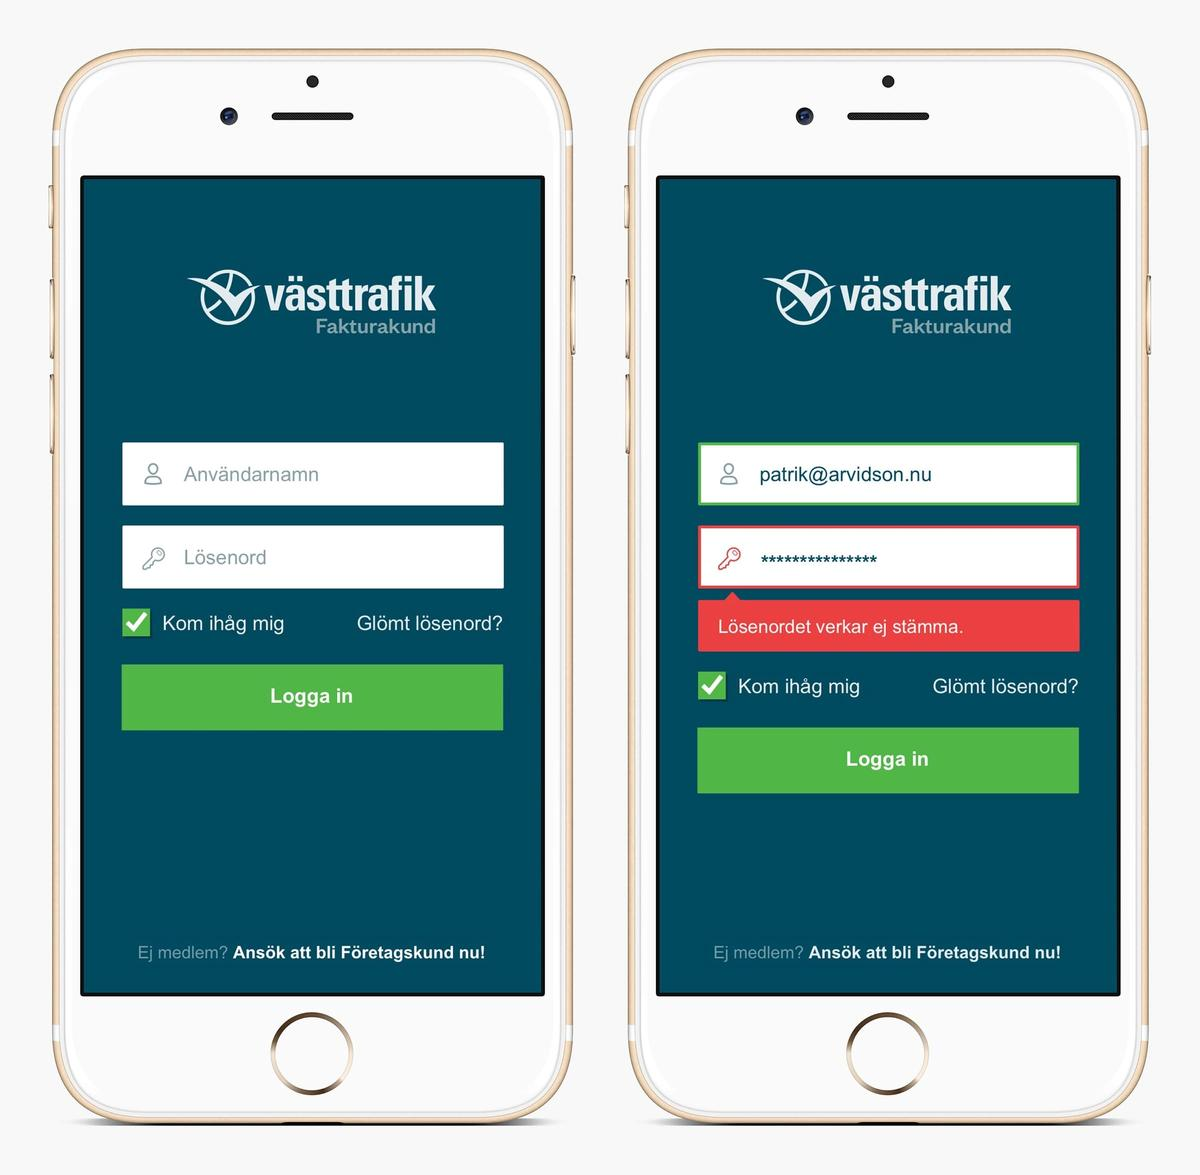 Västtrafik mobile login screens